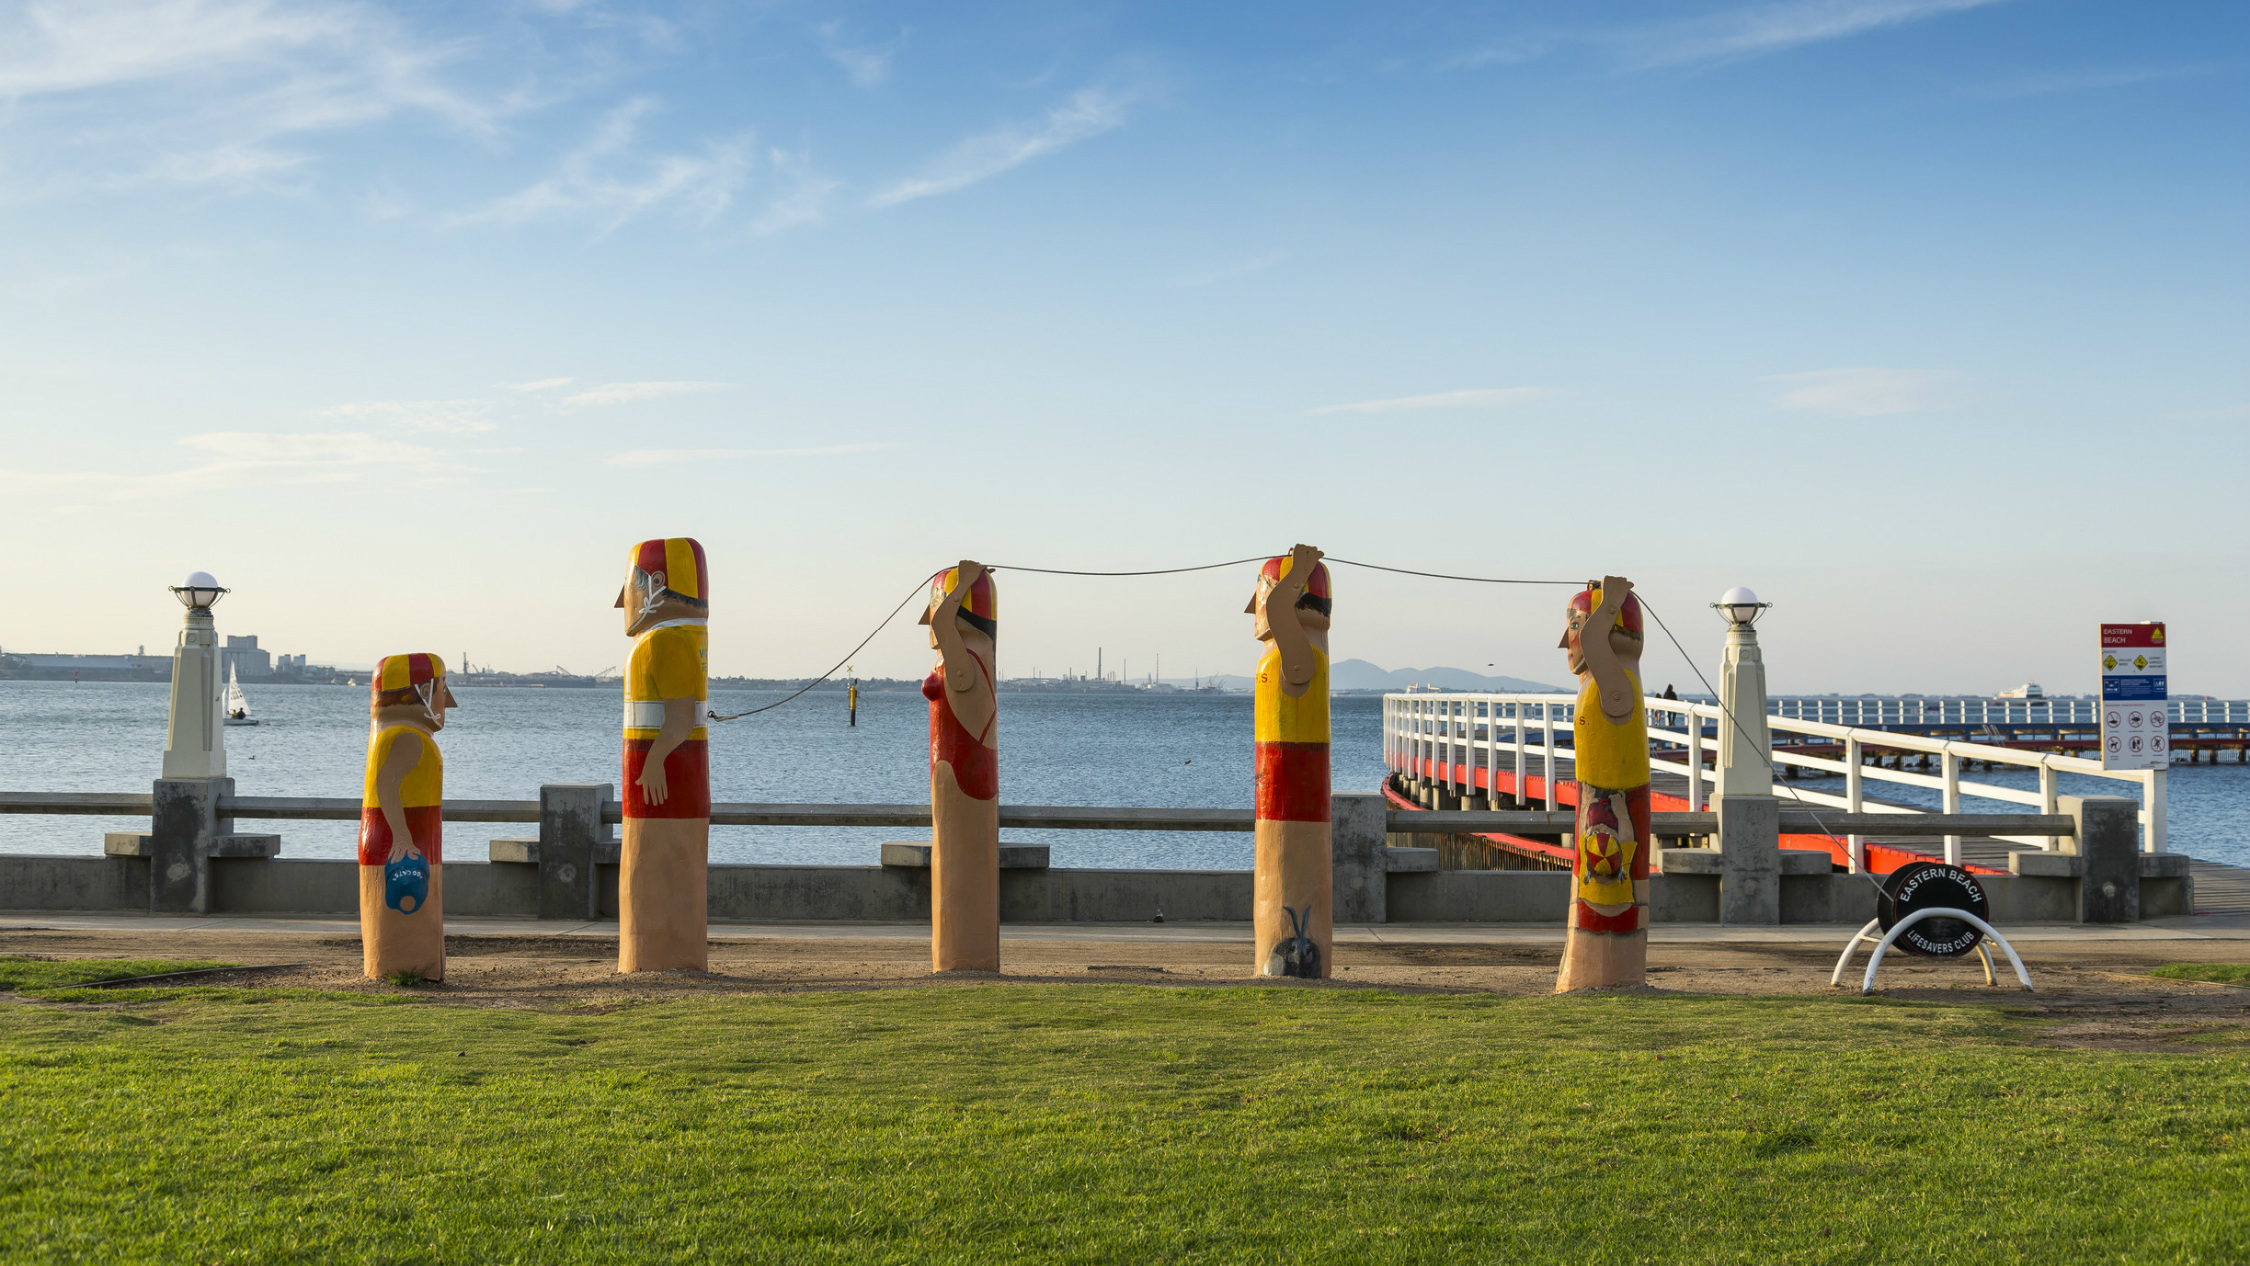 Five timber bollards painted to look like lifesavers on a lawn